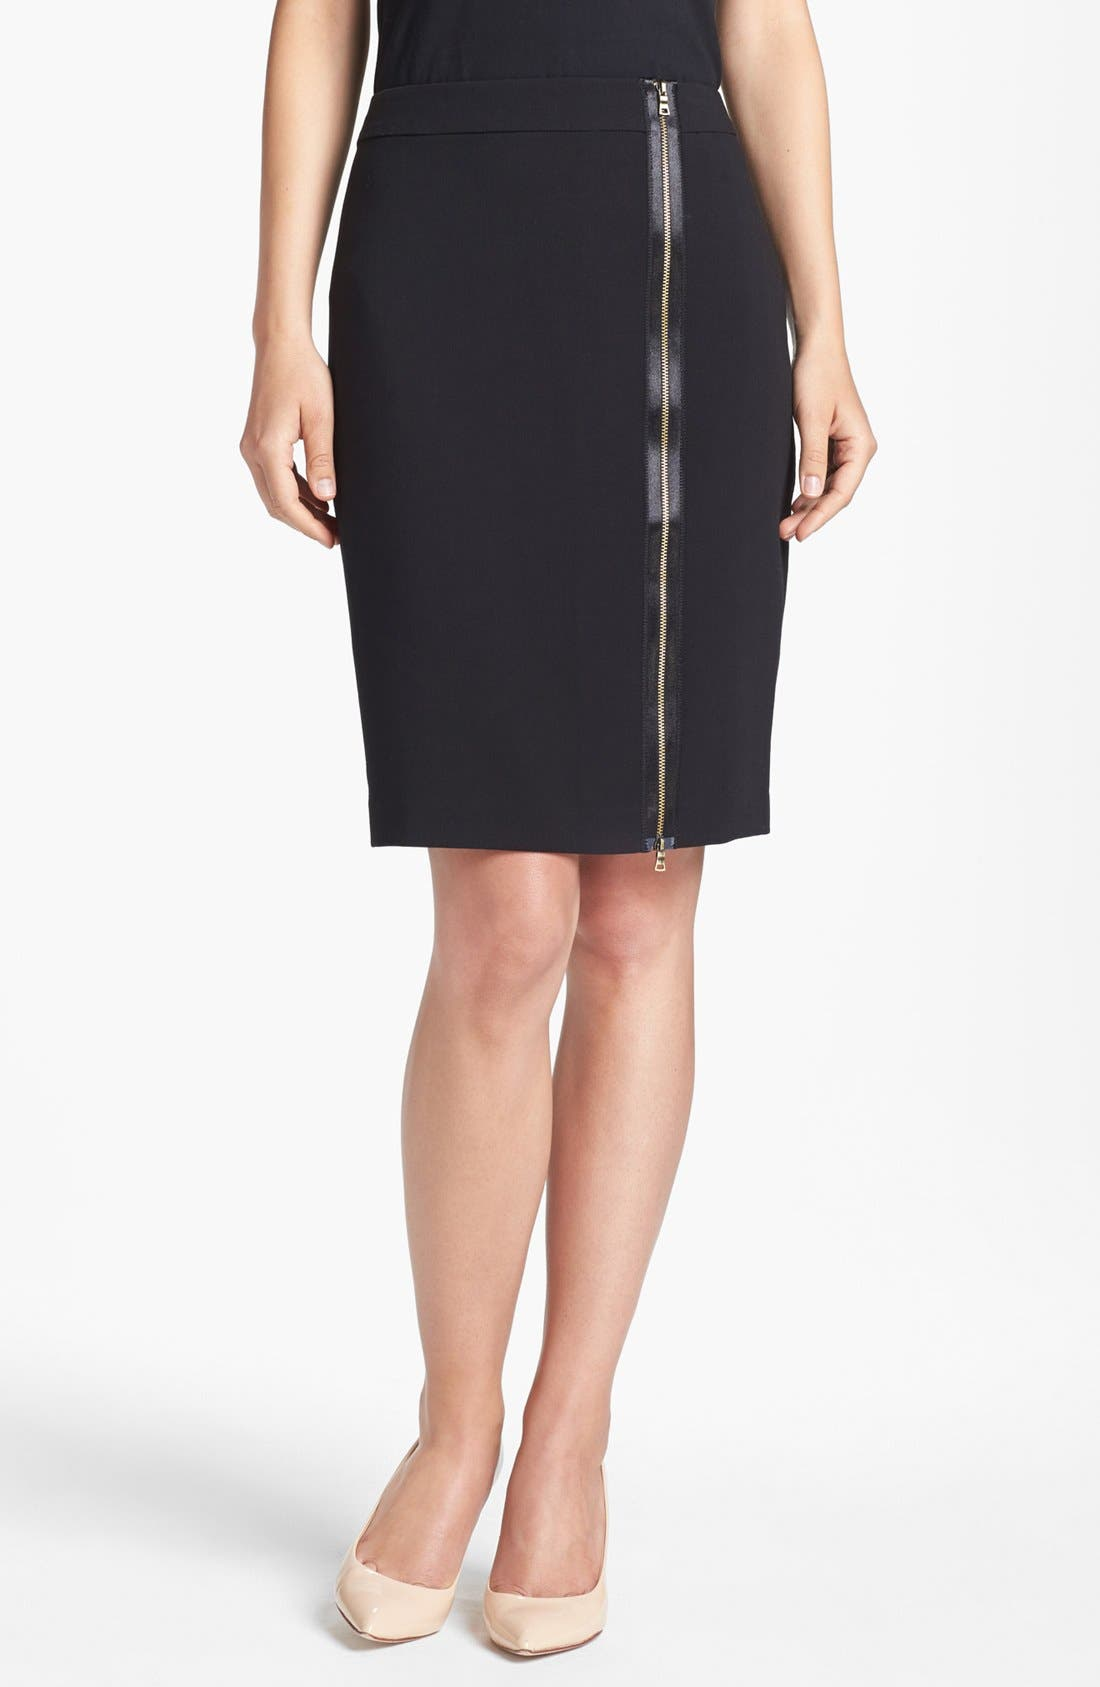 Alternate Image 1 Selected - Adrianna Papell Zip Front Slim Skirt